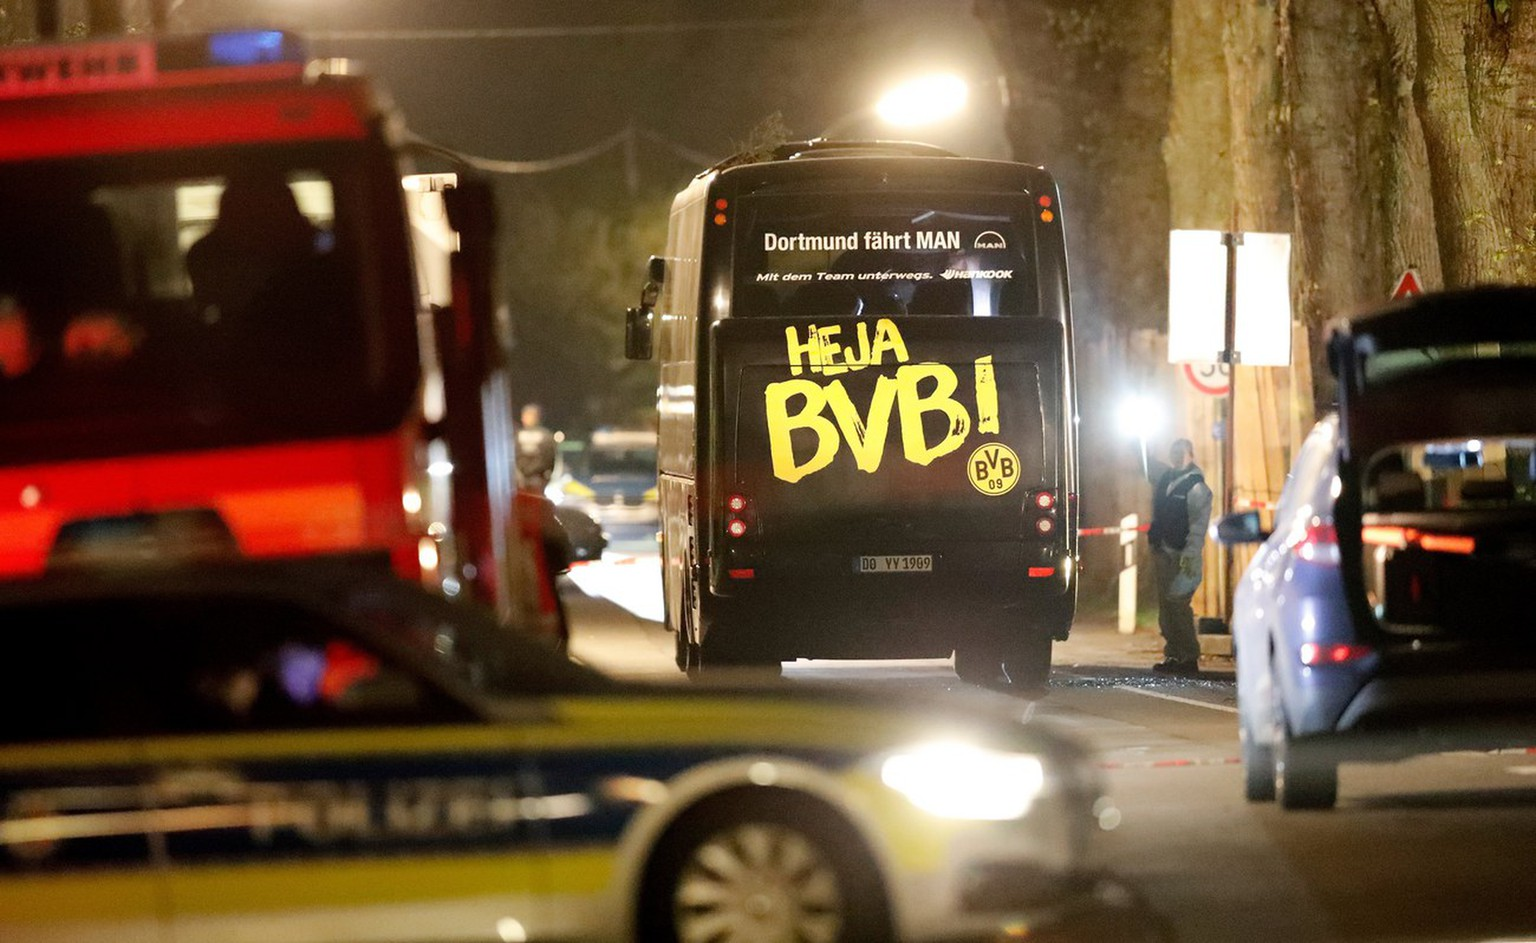 epa05903577 Team bus of Borussia Dortmund is seen on a street after it was hit by three explosions in Dortmund, Germany, 11 April 2017. According to reports, Borussia Dortmund's team bus was damaged by three explosions on 11 April, as it was on its way to the stadium ahead of the UEFA Champions League soccer match between BVorussia Dortmund and AS Monaco. Borussia Dortmund's player Marc Bartra was injured and is hospitalized. The match has been postponed.  EPA/FRIEDEMANN VOGEL BEST QUALITY AVAILABLE